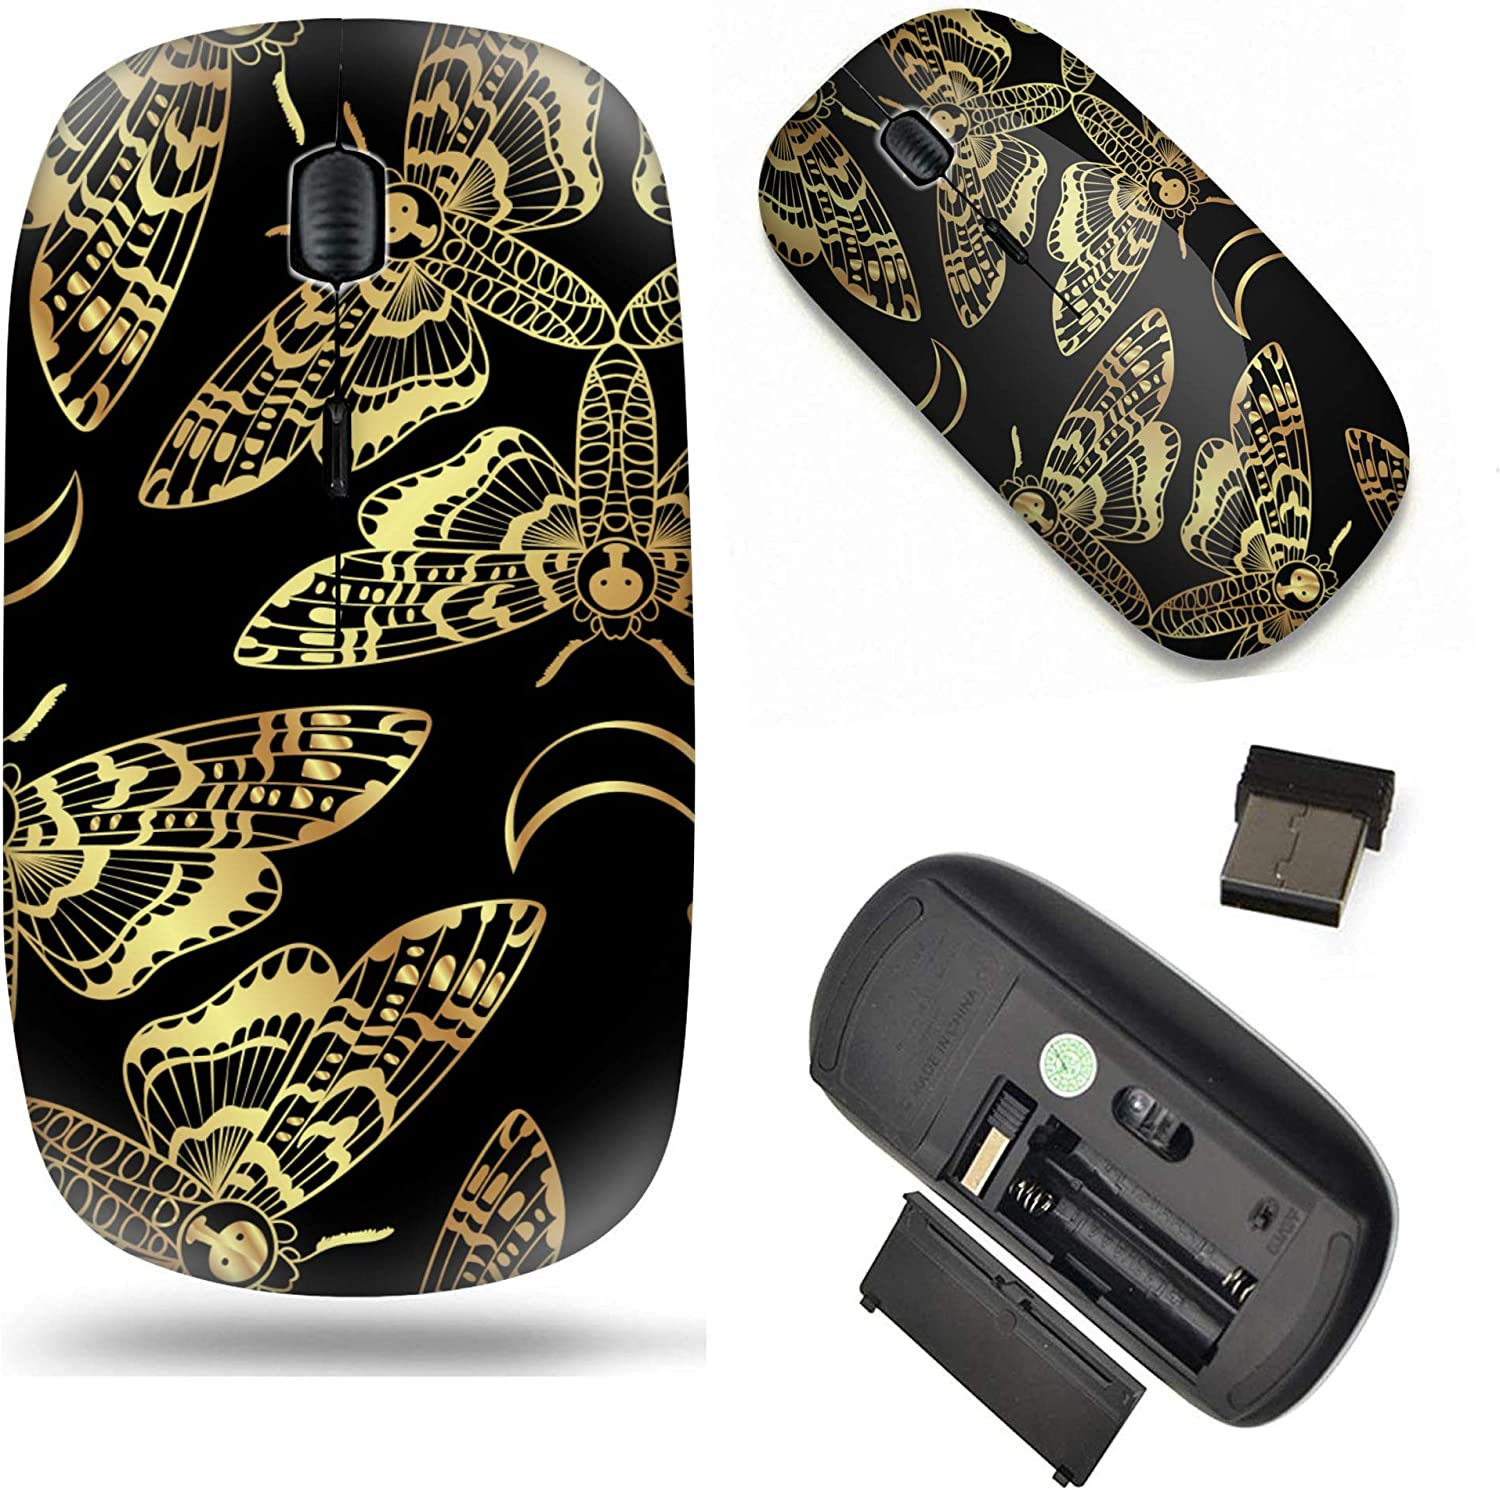 Computer PC Golden Deaths Head Hawk Moth Unique Pattern Optical Mice Mobile Wireless Mouse 2.4G Portable for Notebook Laptop